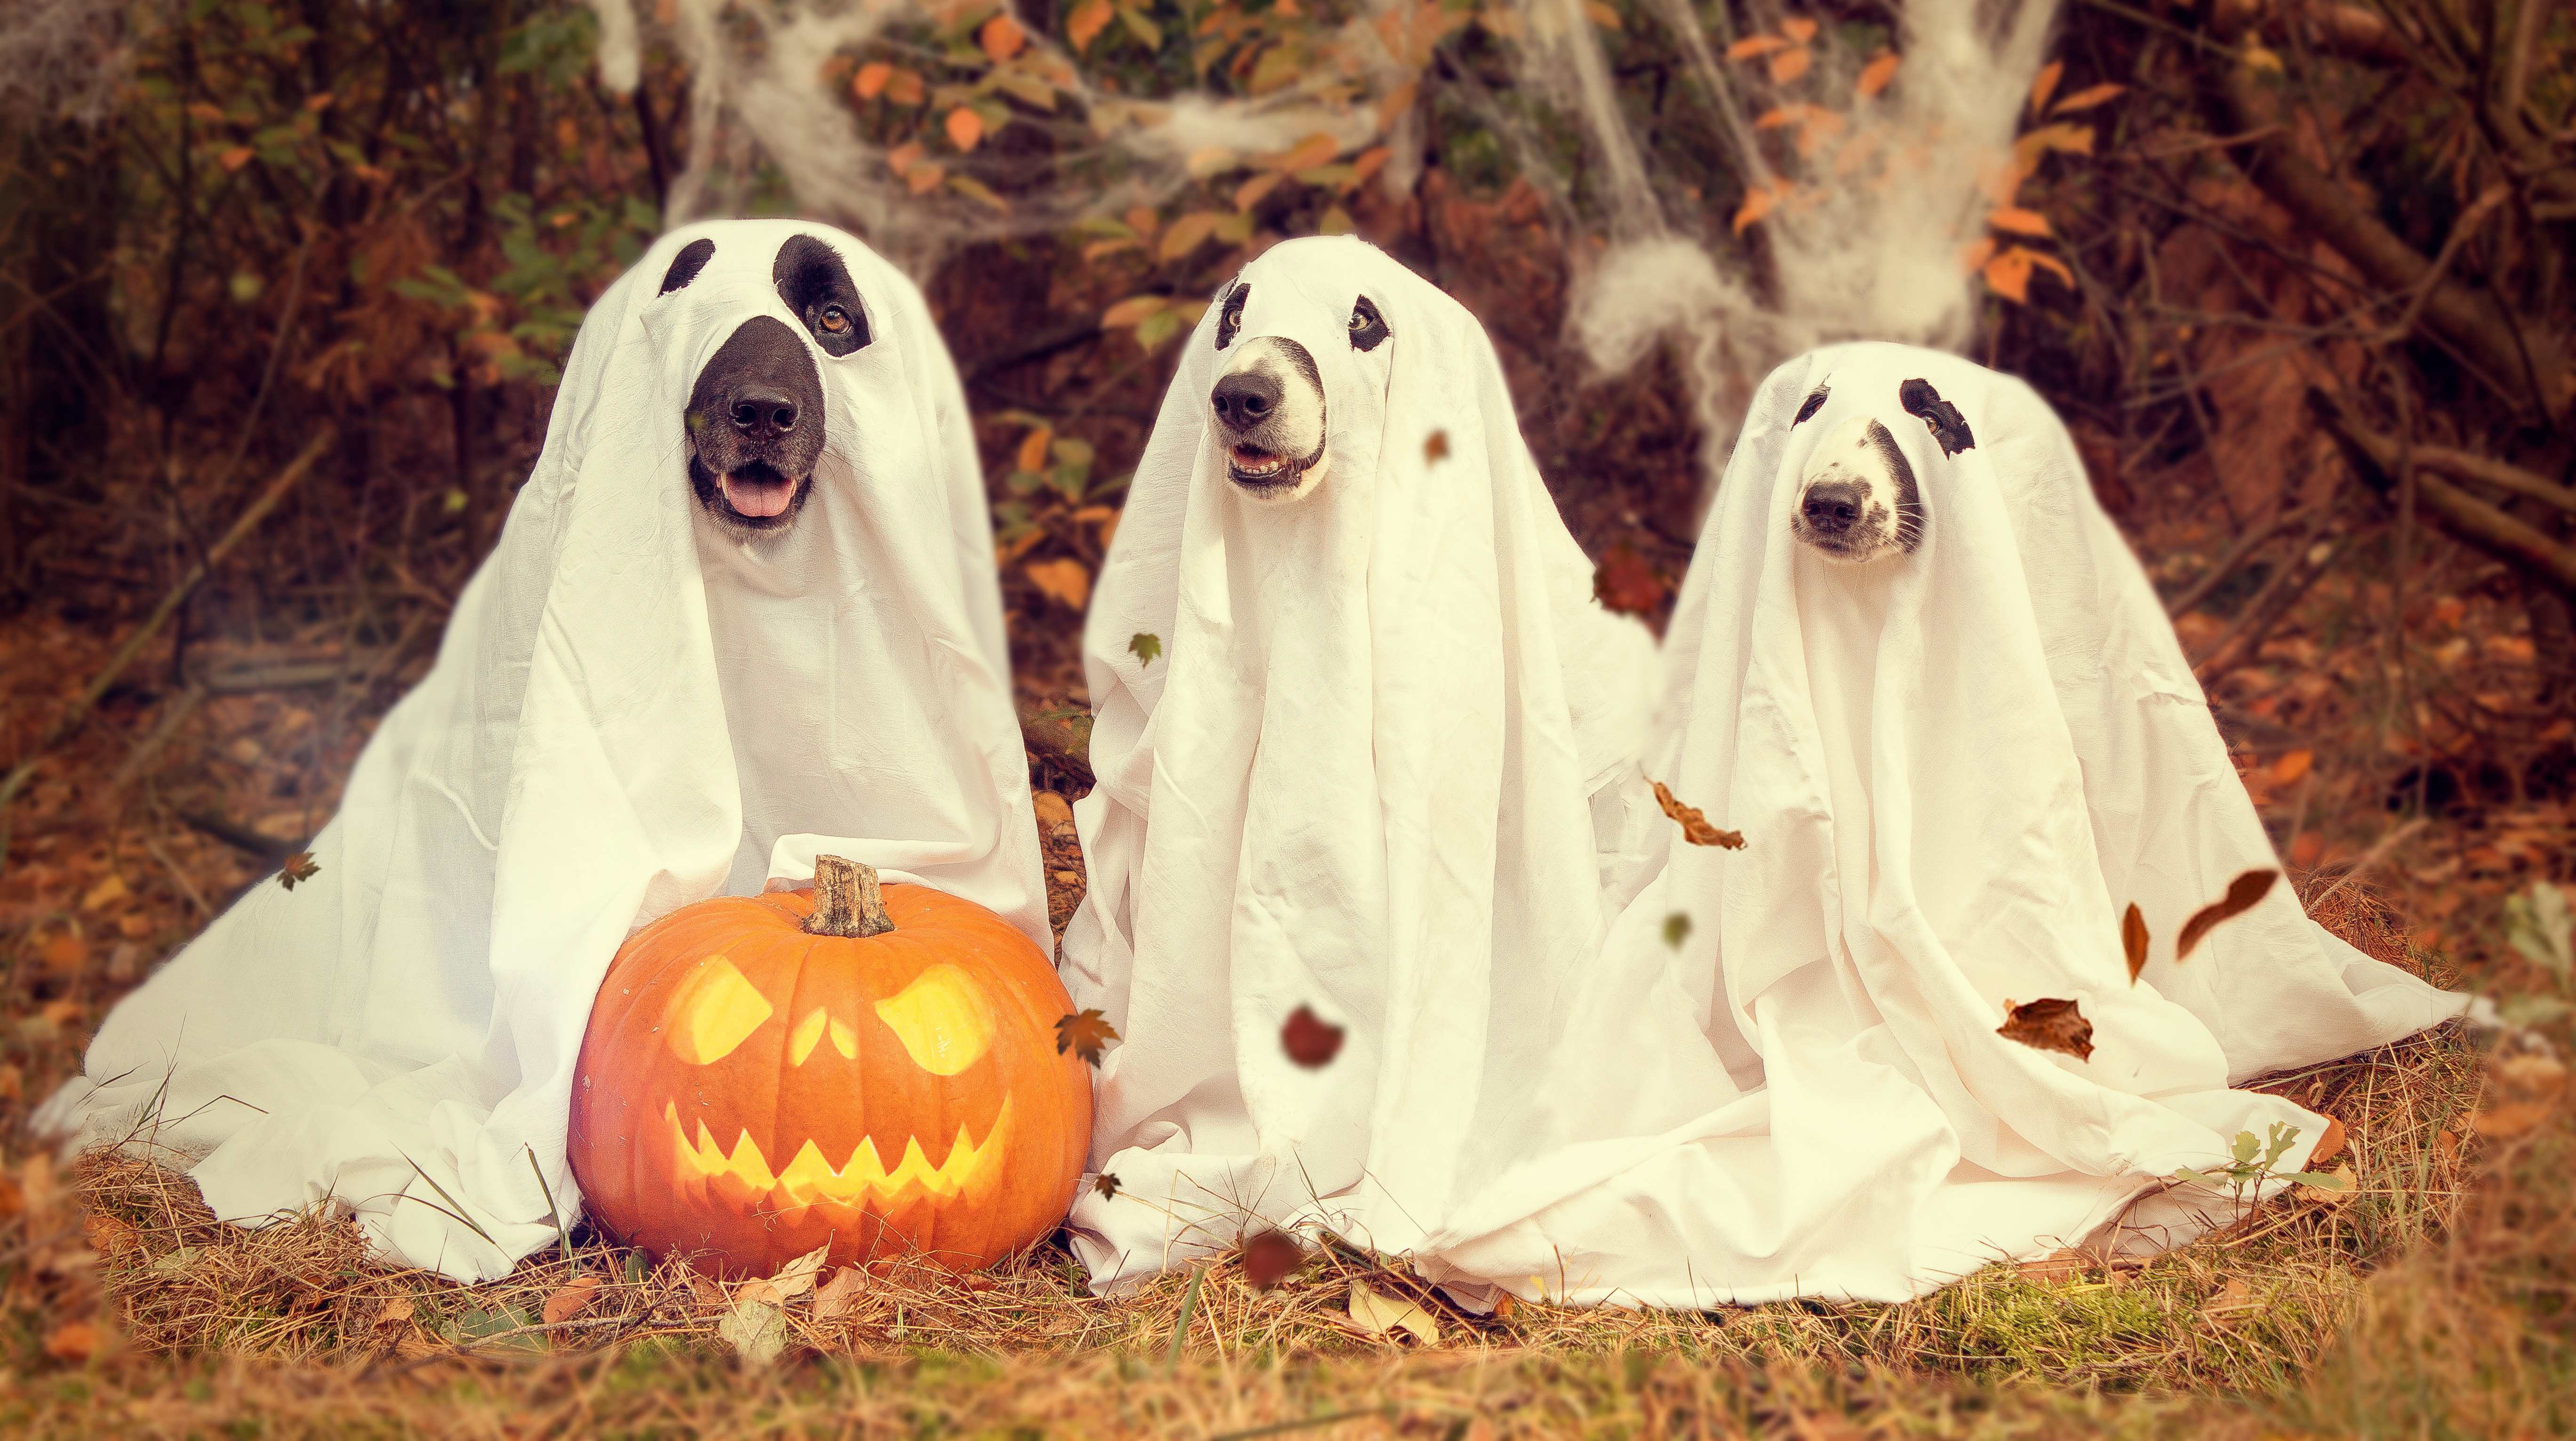 Free Photos u003e Holidays Photos u003e Halloween ... & Dogs in Ghost Halloween Costumes image - Free stock photo - Public ...